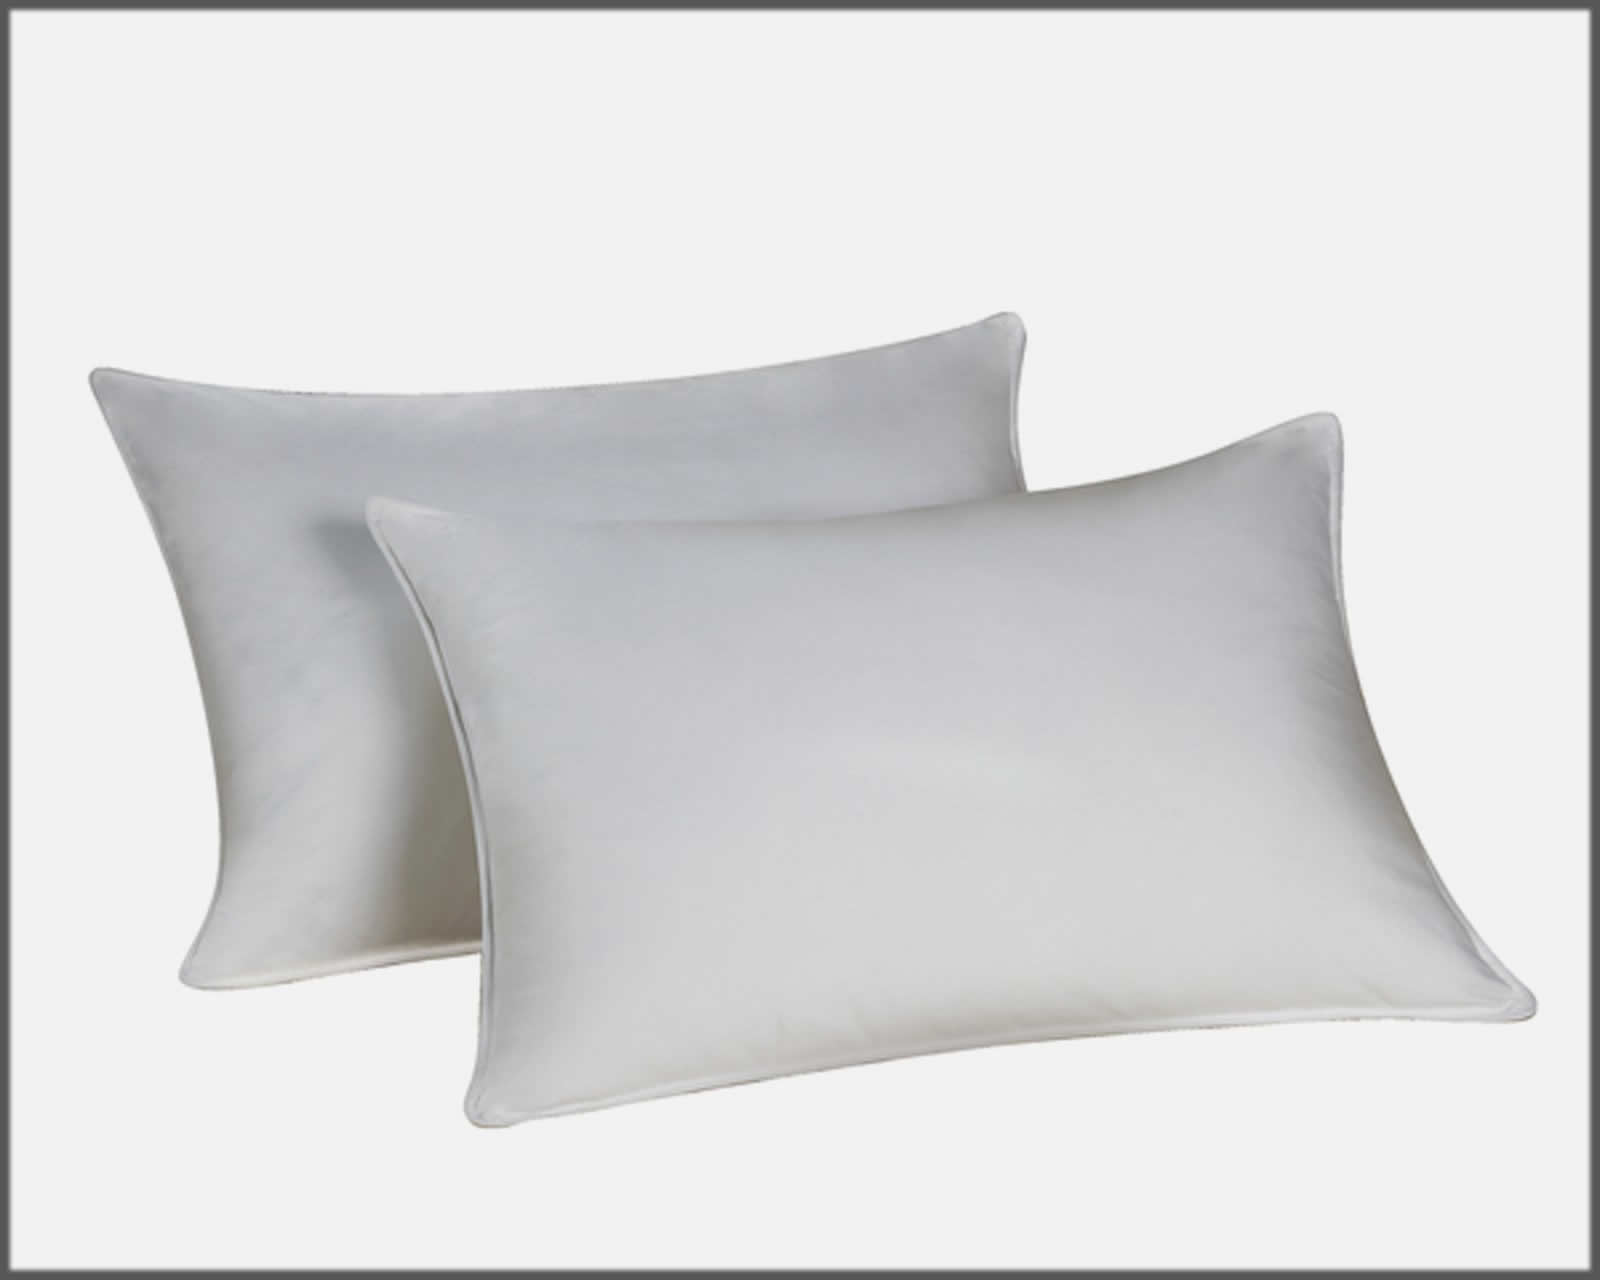 Elevated head with two pillows